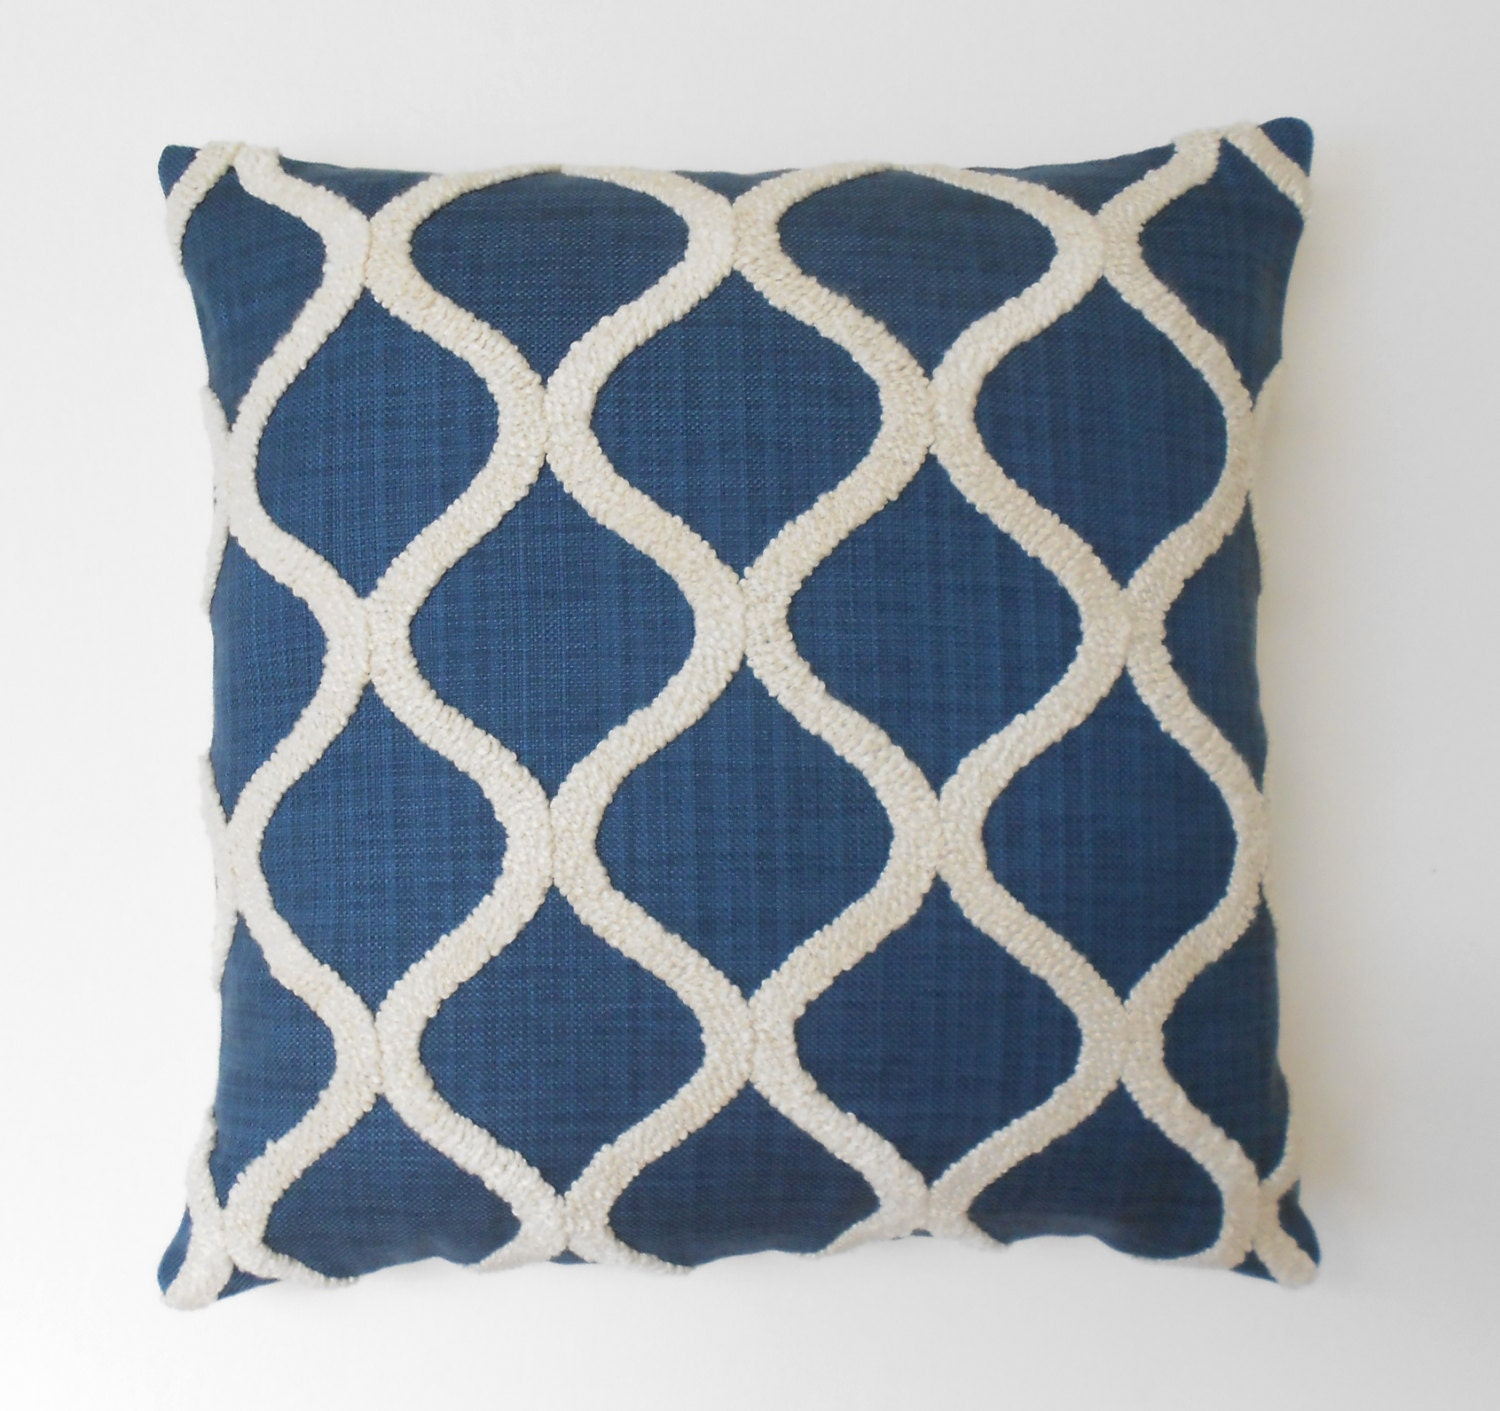 Navy blue embroidered tufted trellis decorative pillow cover